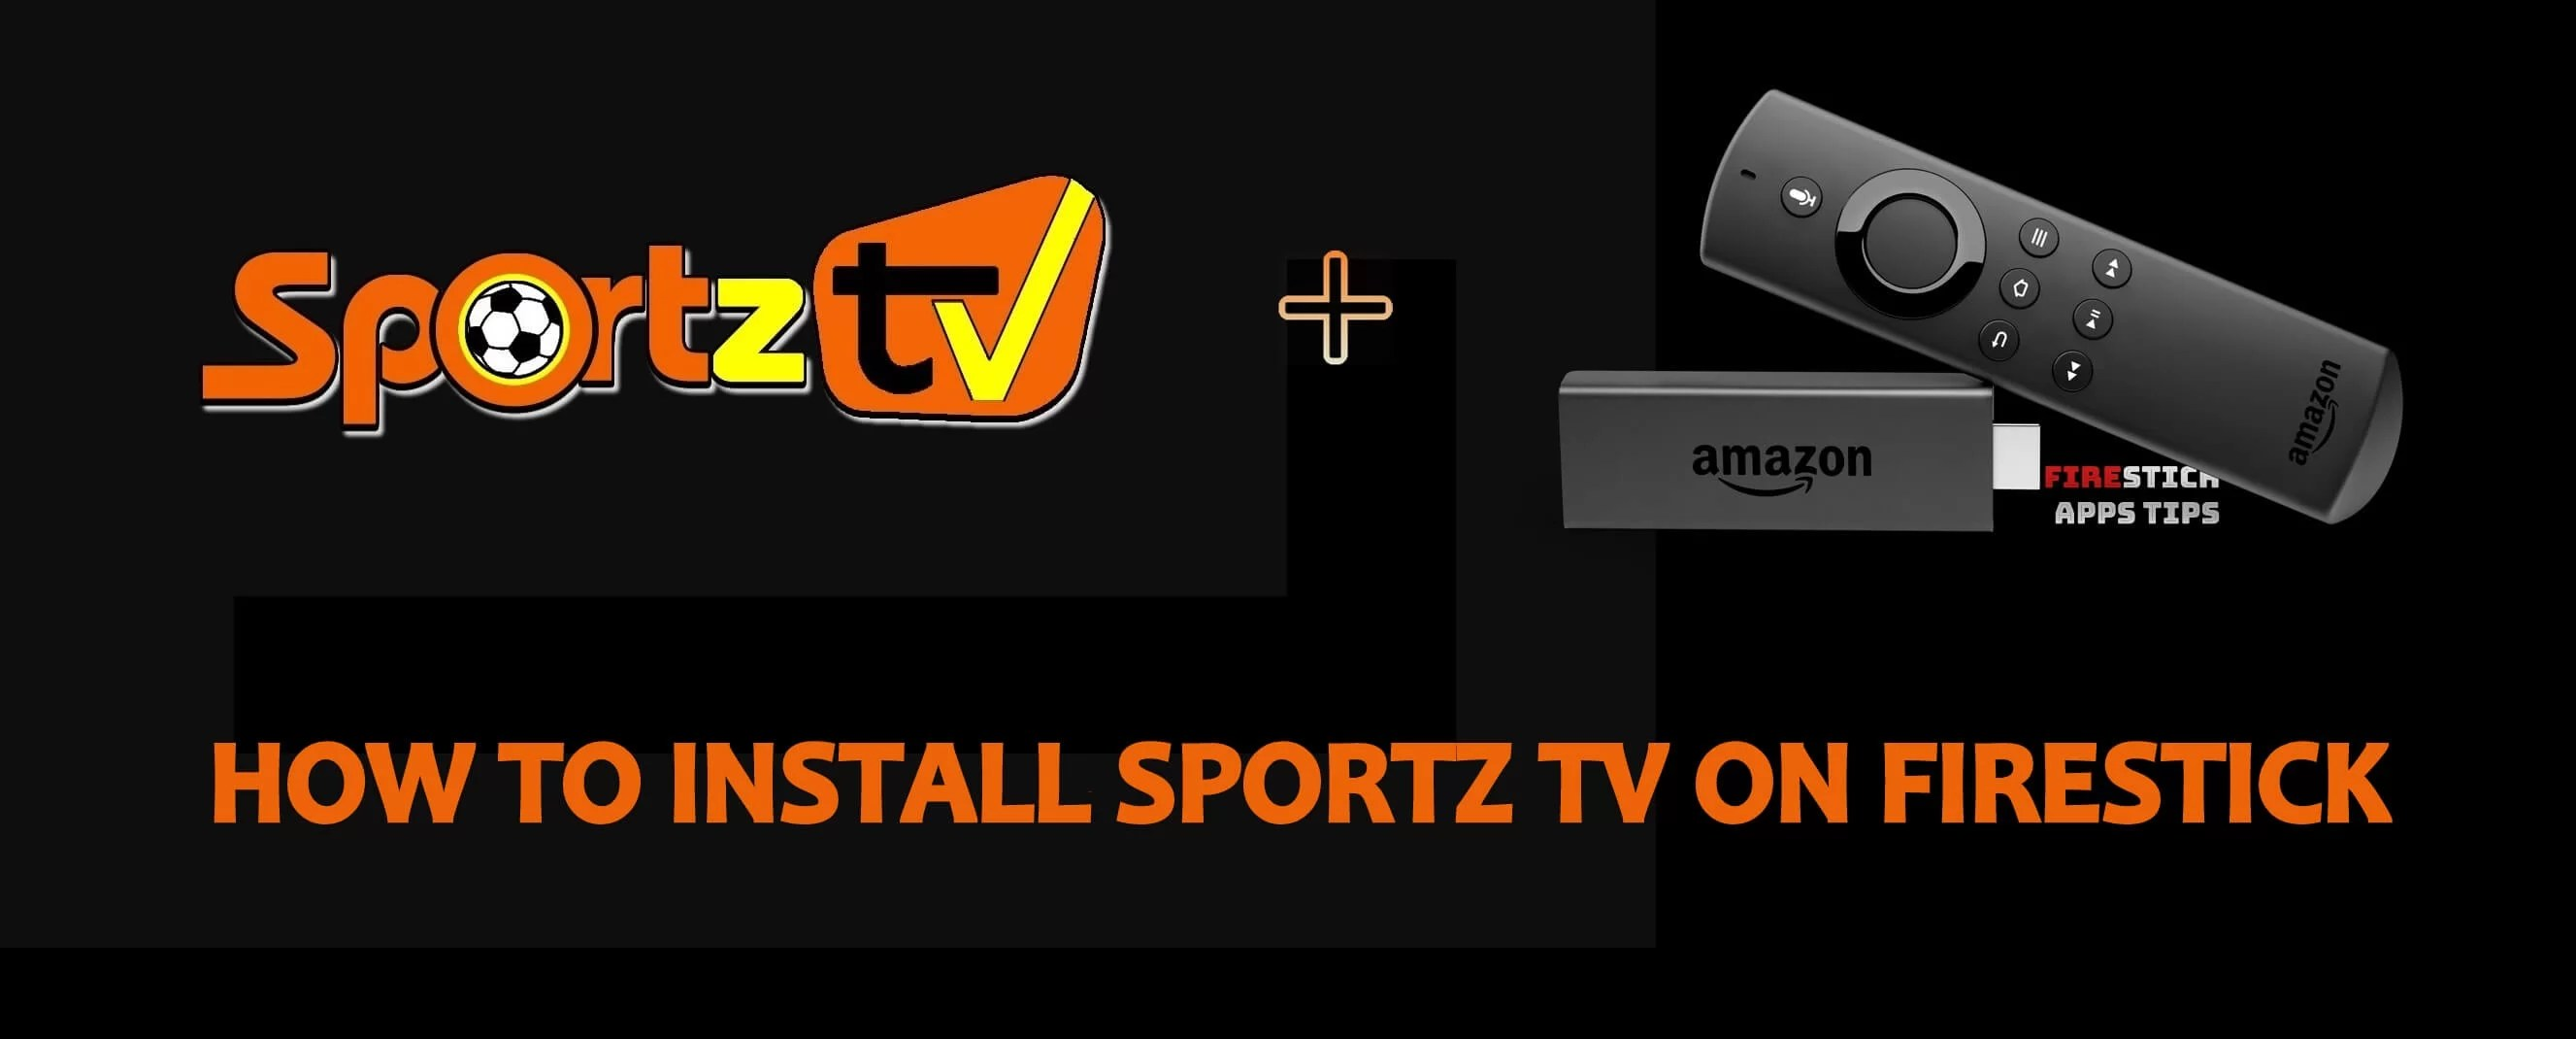 How to Install Sportz TV IPTV on Firestick / Android TV Box [2019]